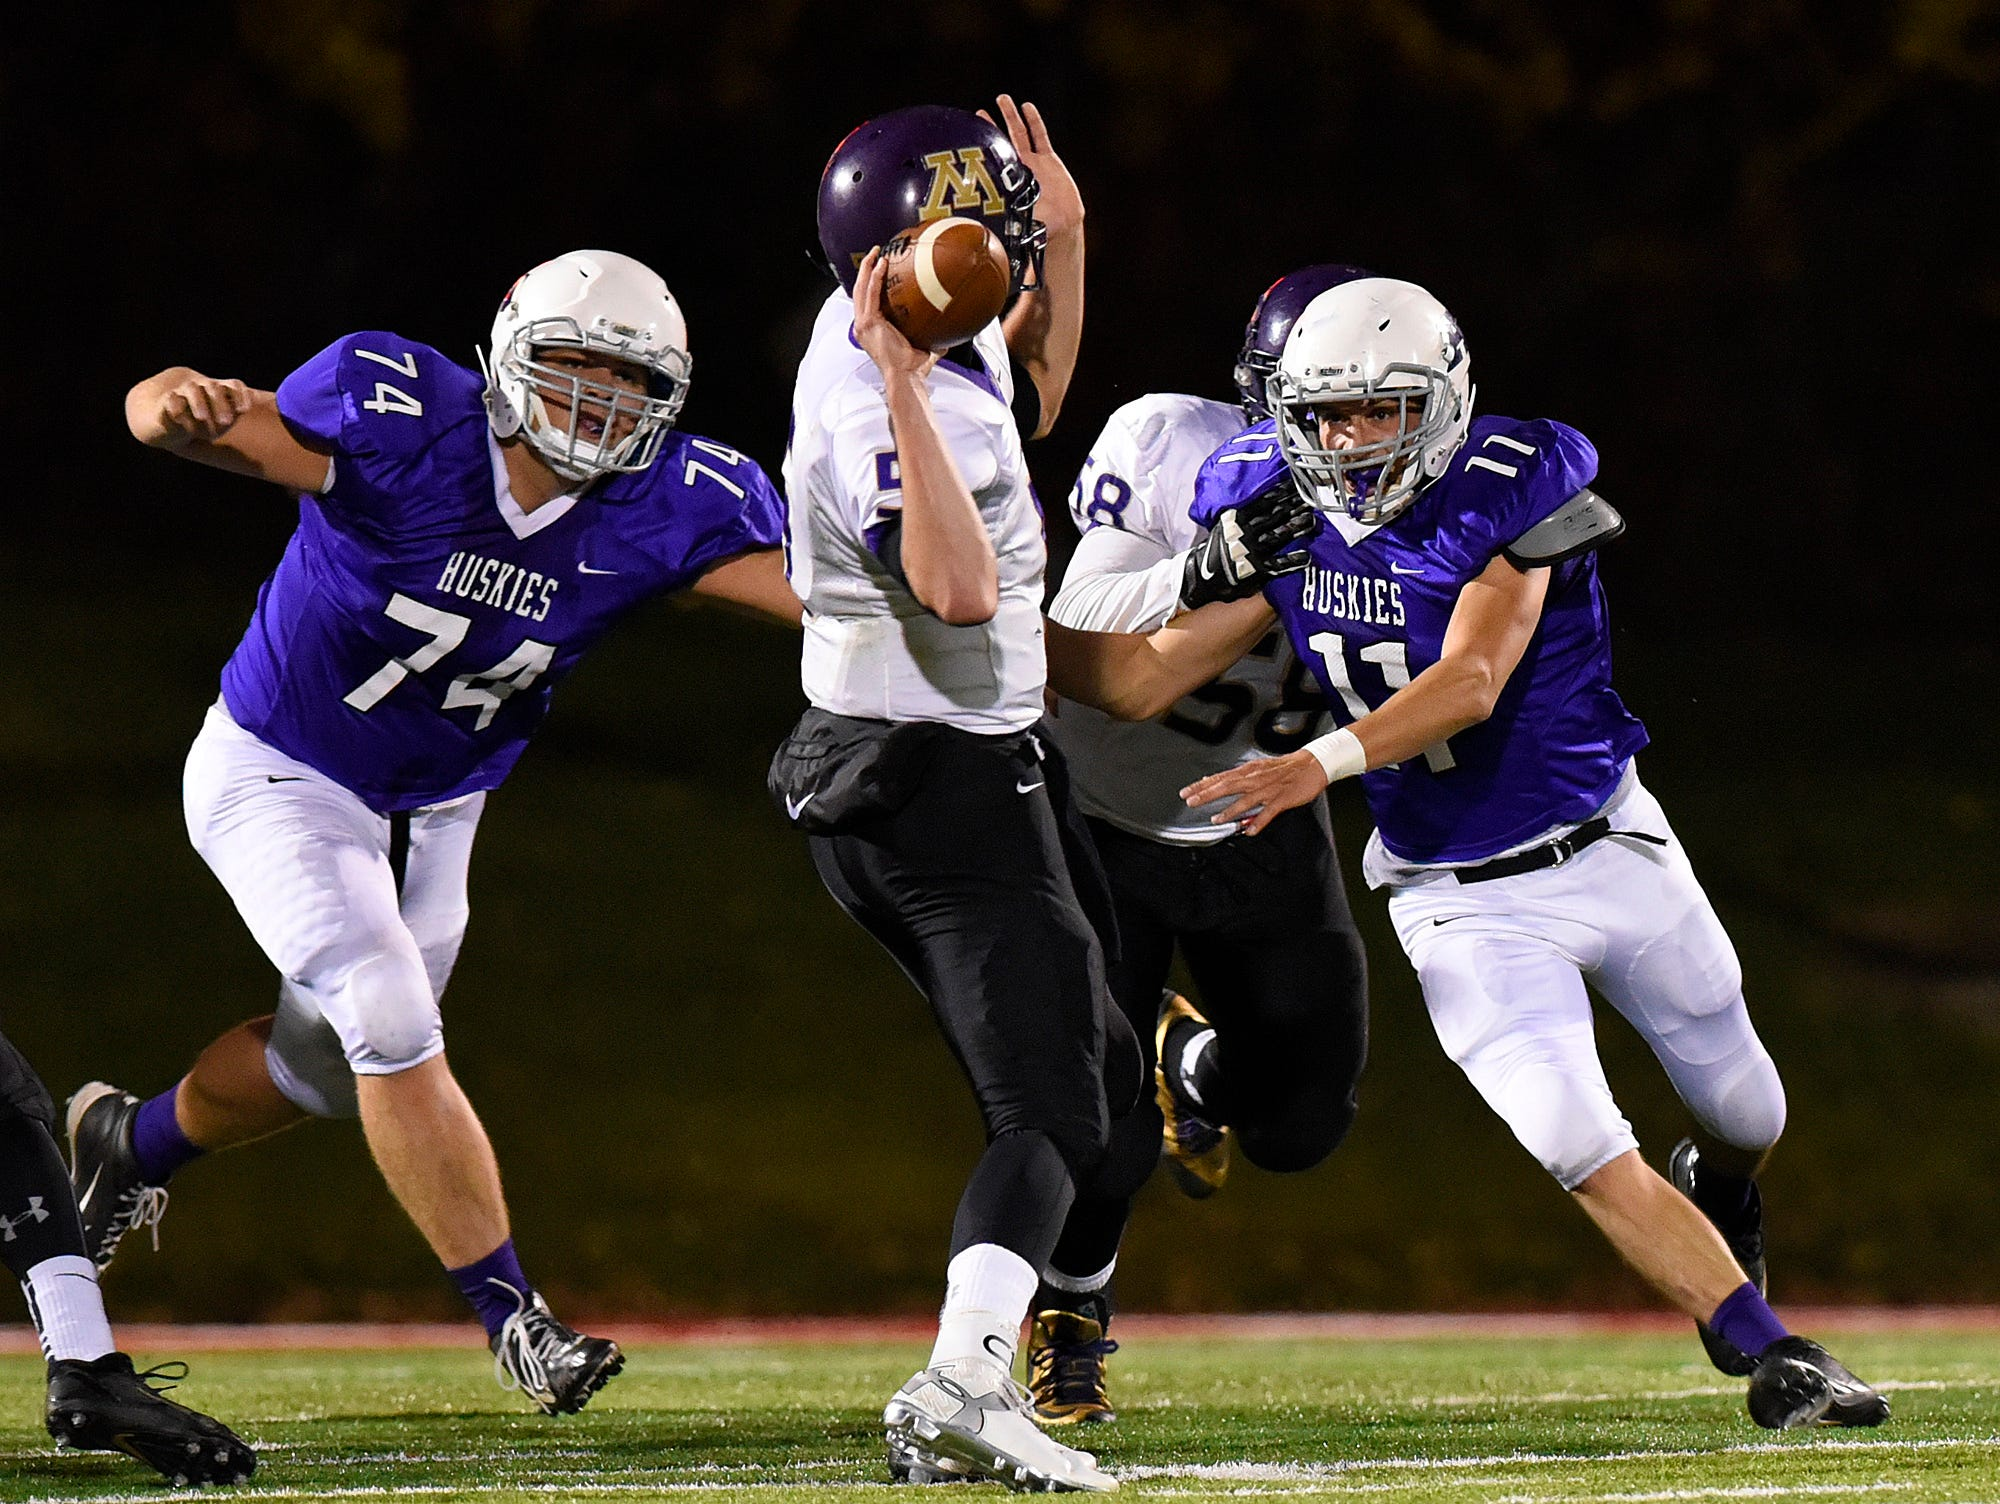 Albany's Brody Bierbaum (74) and Neal Anderson (11) set their sights on Montevideo's quarterback Troy Diggins during the first half Saturday, Oct. 24 at Husky Stadium.